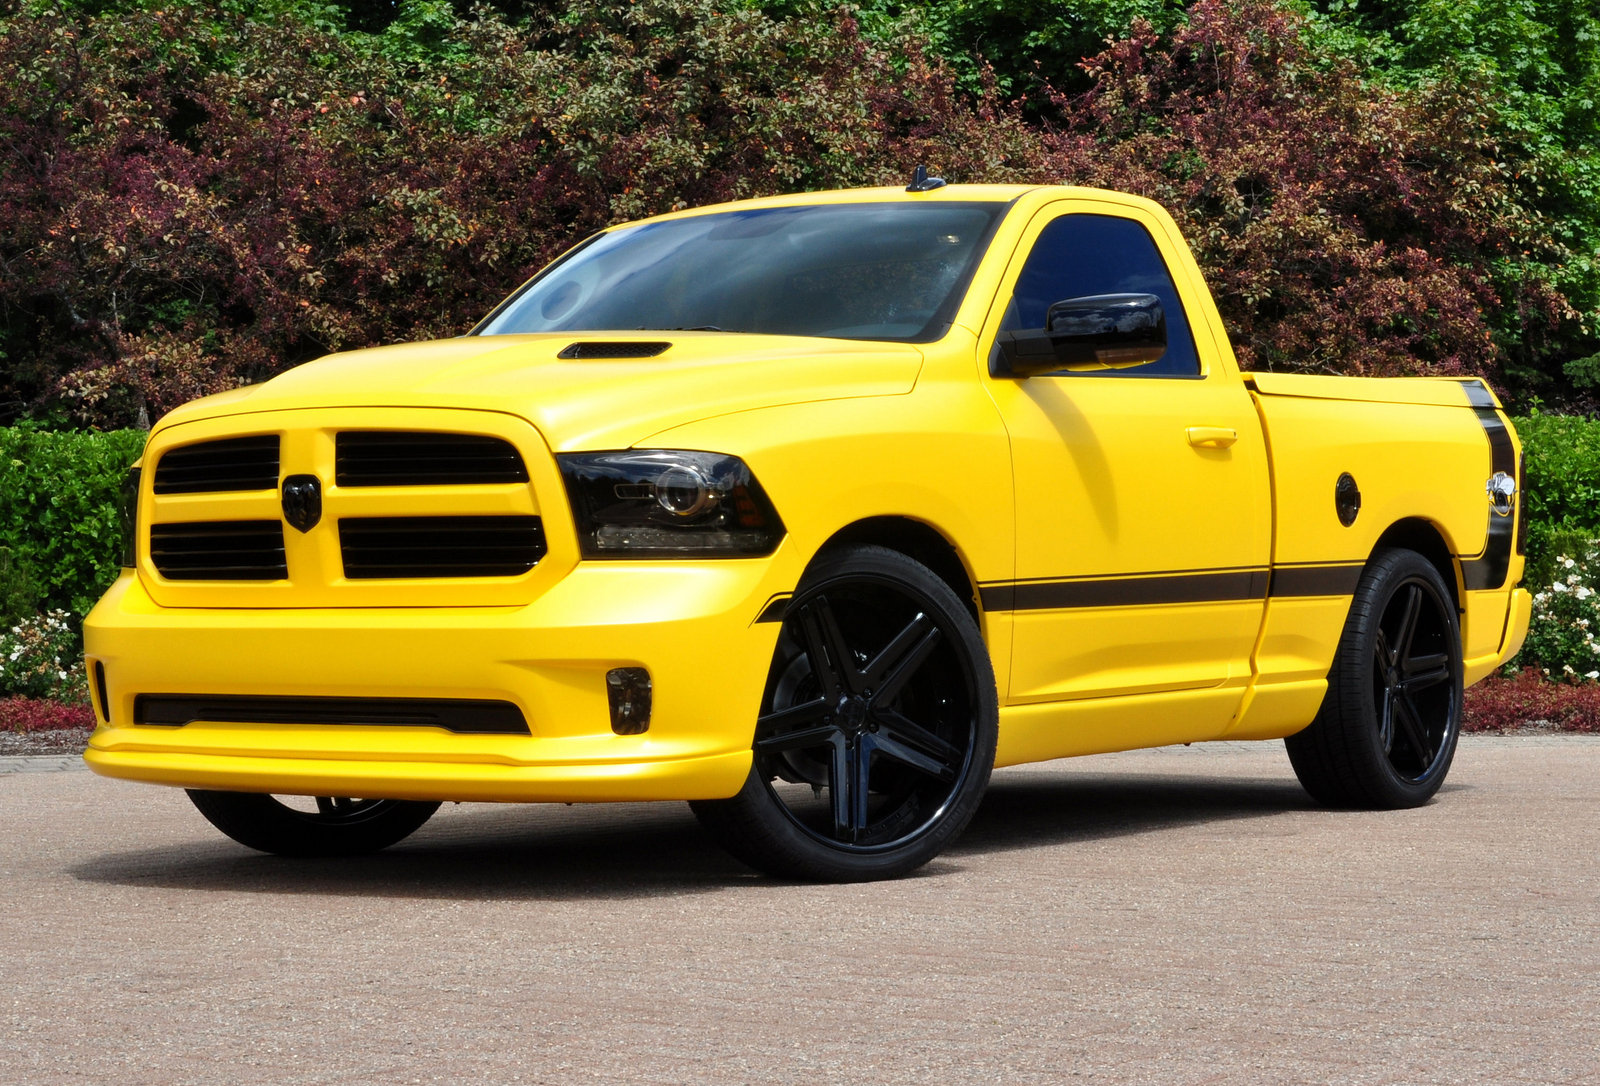 2014 ram 1500 rumble bee concept picture 519276 car review top speed. Black Bedroom Furniture Sets. Home Design Ideas